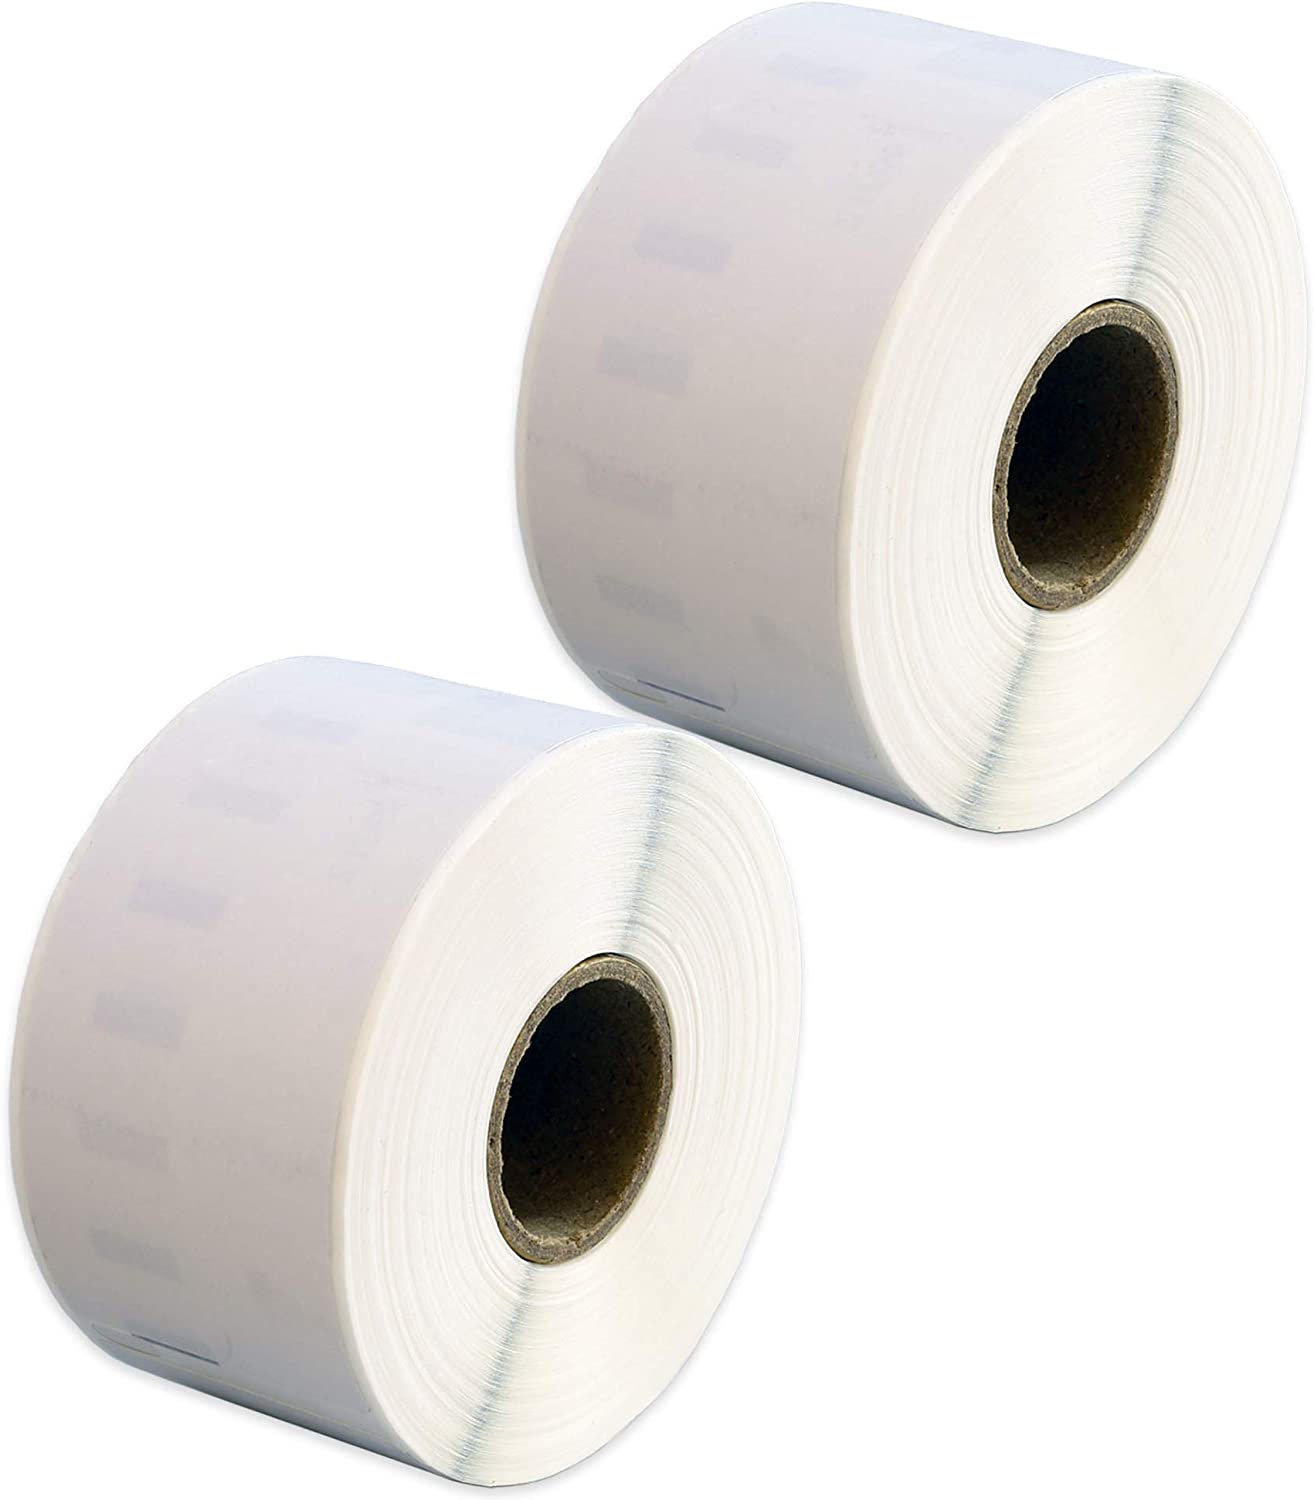 2x Compatible 99012 Twin 89x36mm 4x260 Labels 99012 for Dymo LabelWriter SE450